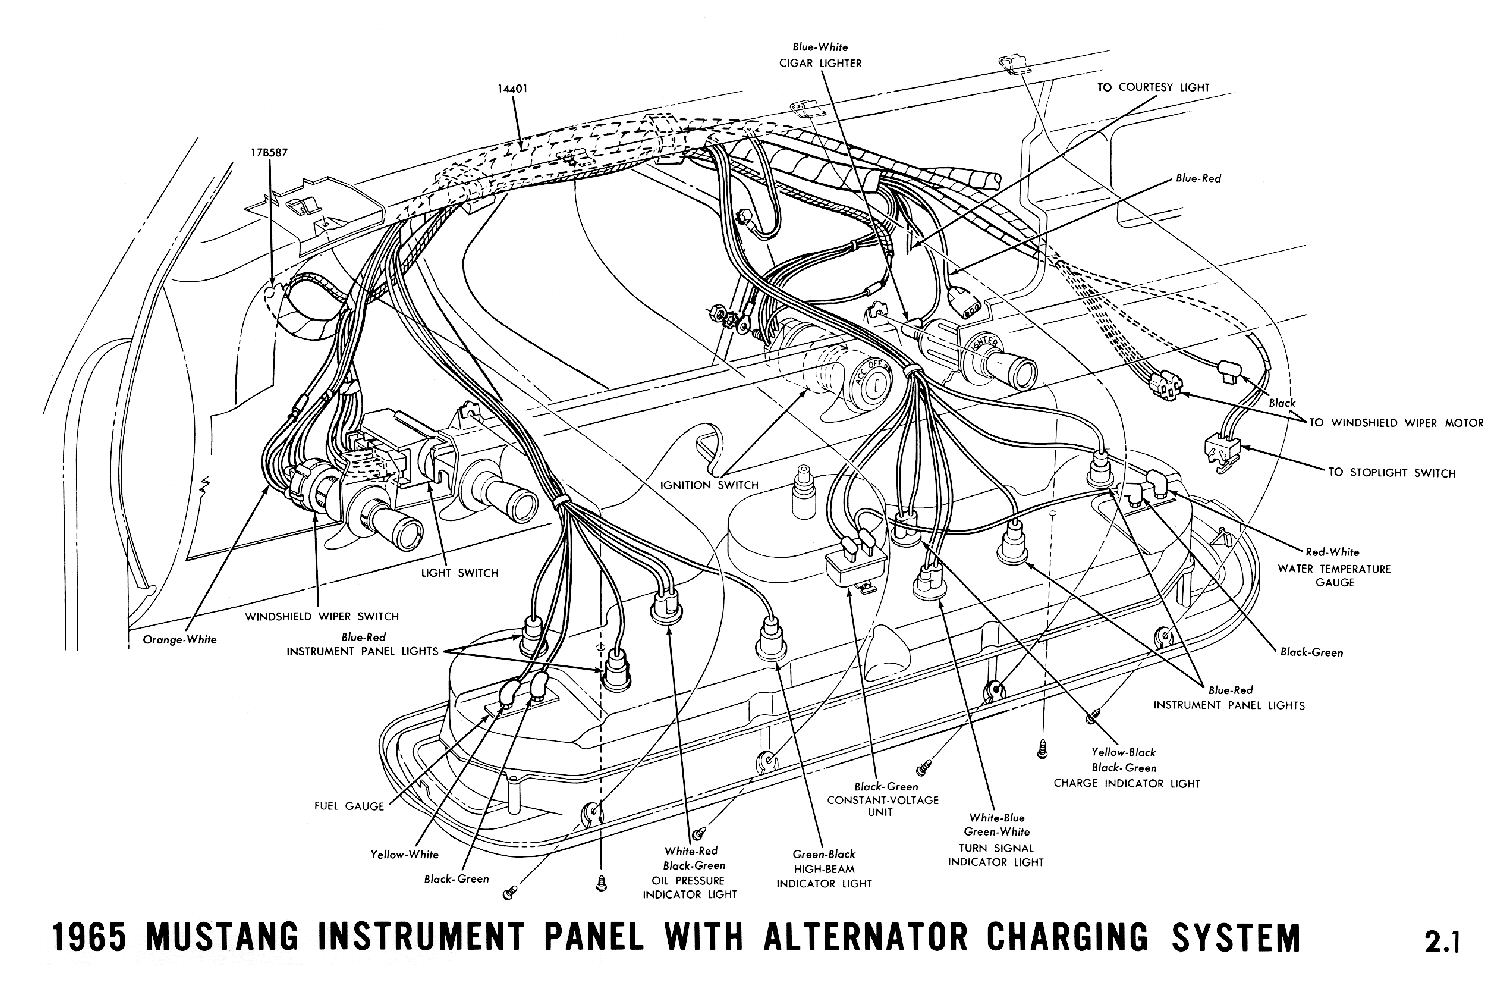 1965a 1965 mustang wiring diagrams average joe restoration highway 22 wiring diagram at aneh.co